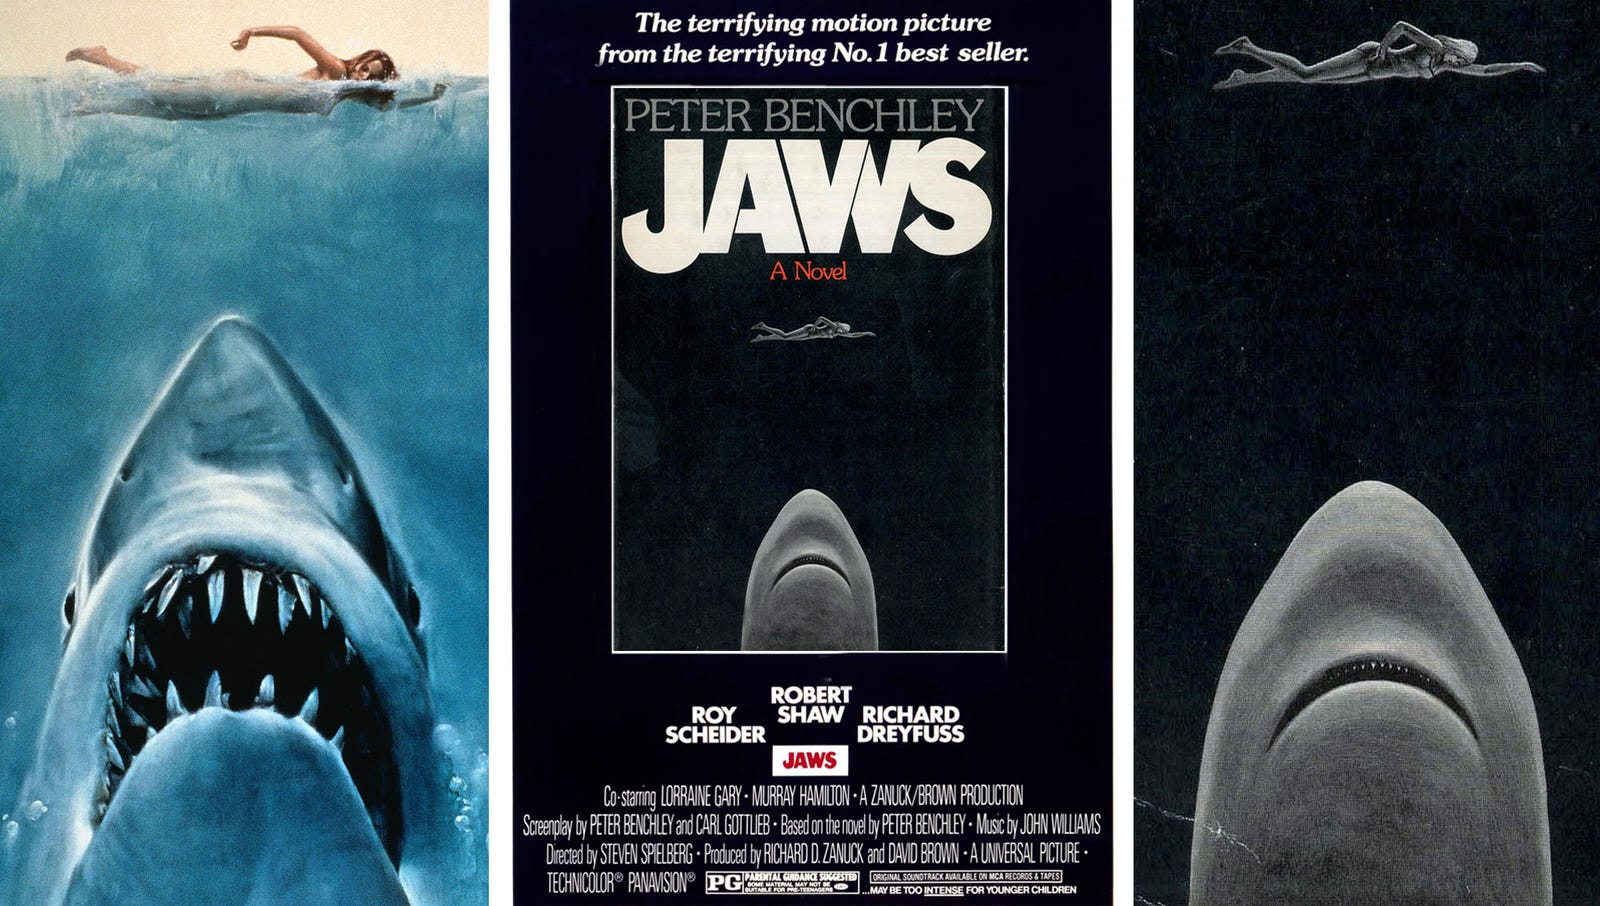 Spielberg's Jaws adaptation cut the mafia and sex subplots